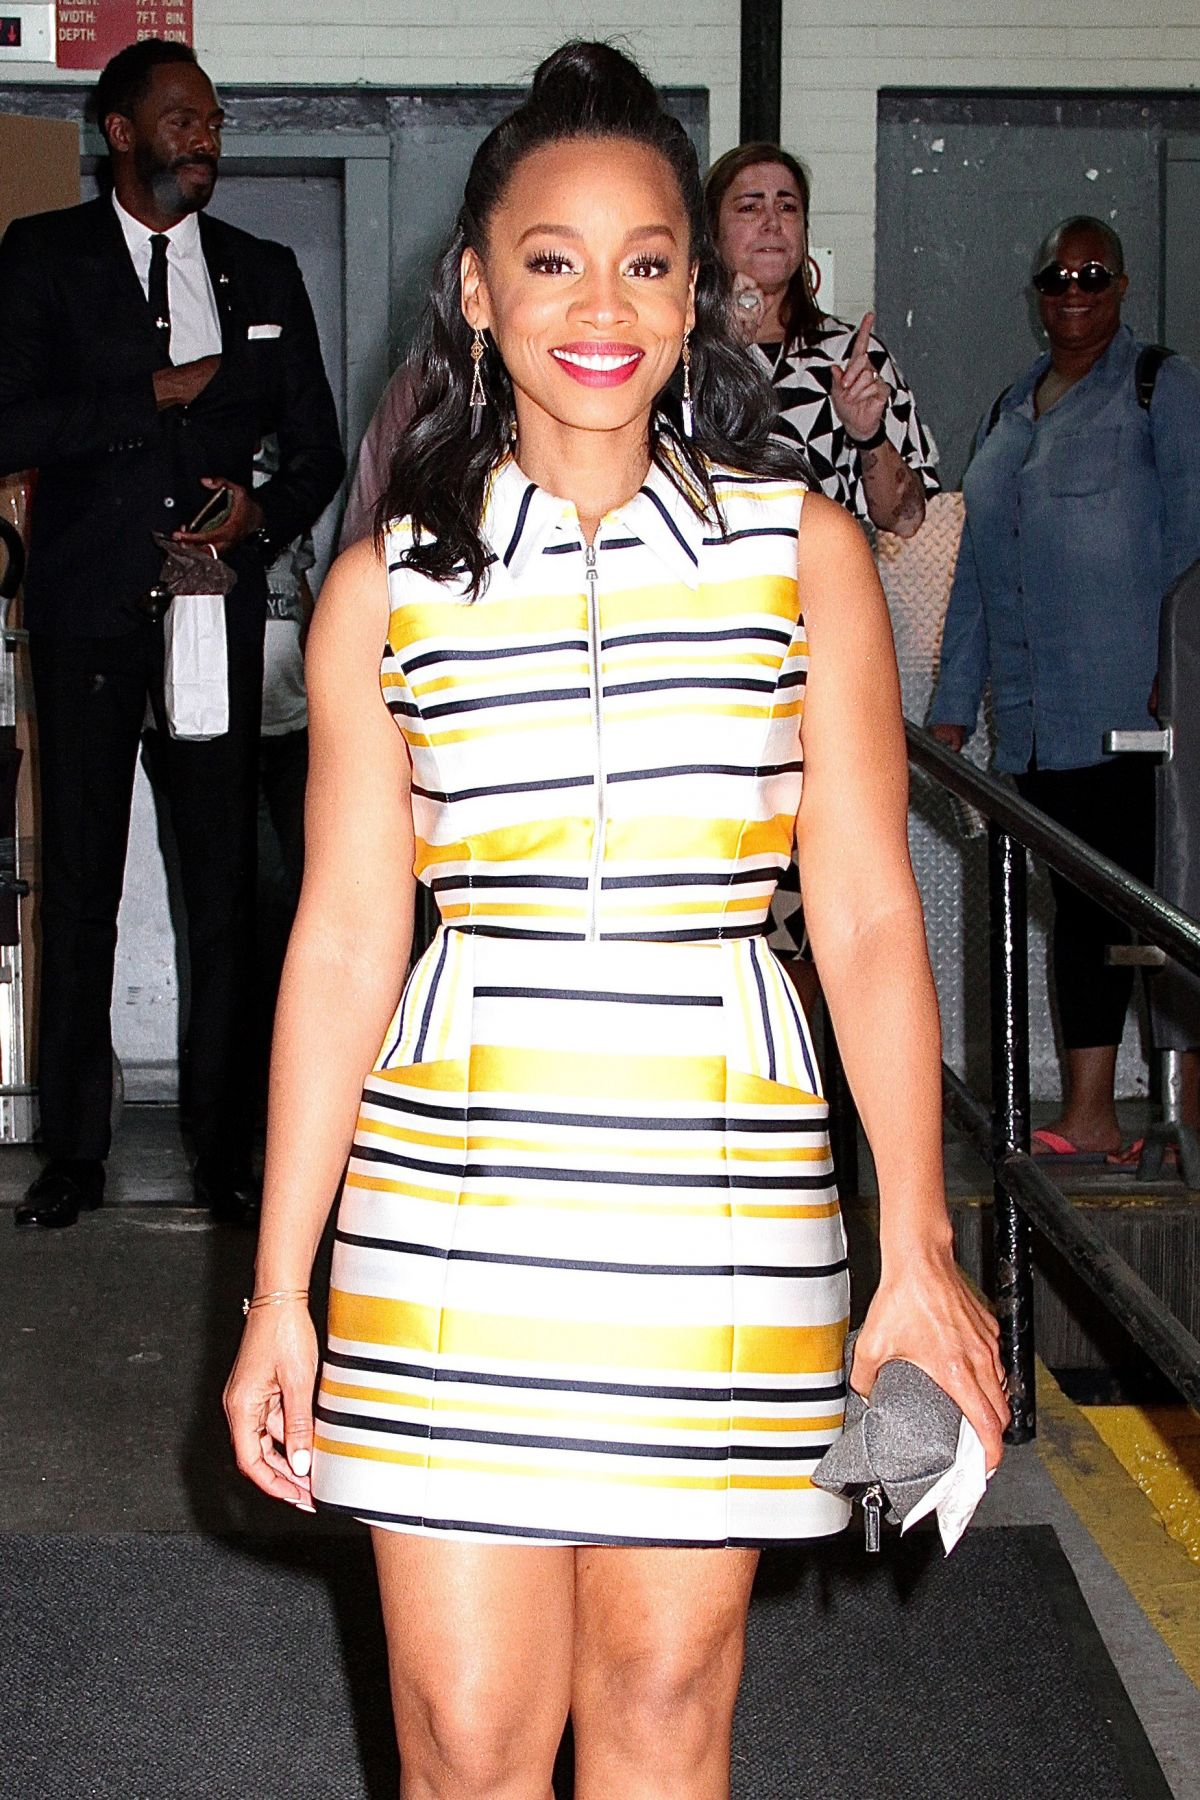 Anika noni rose body - photo#23